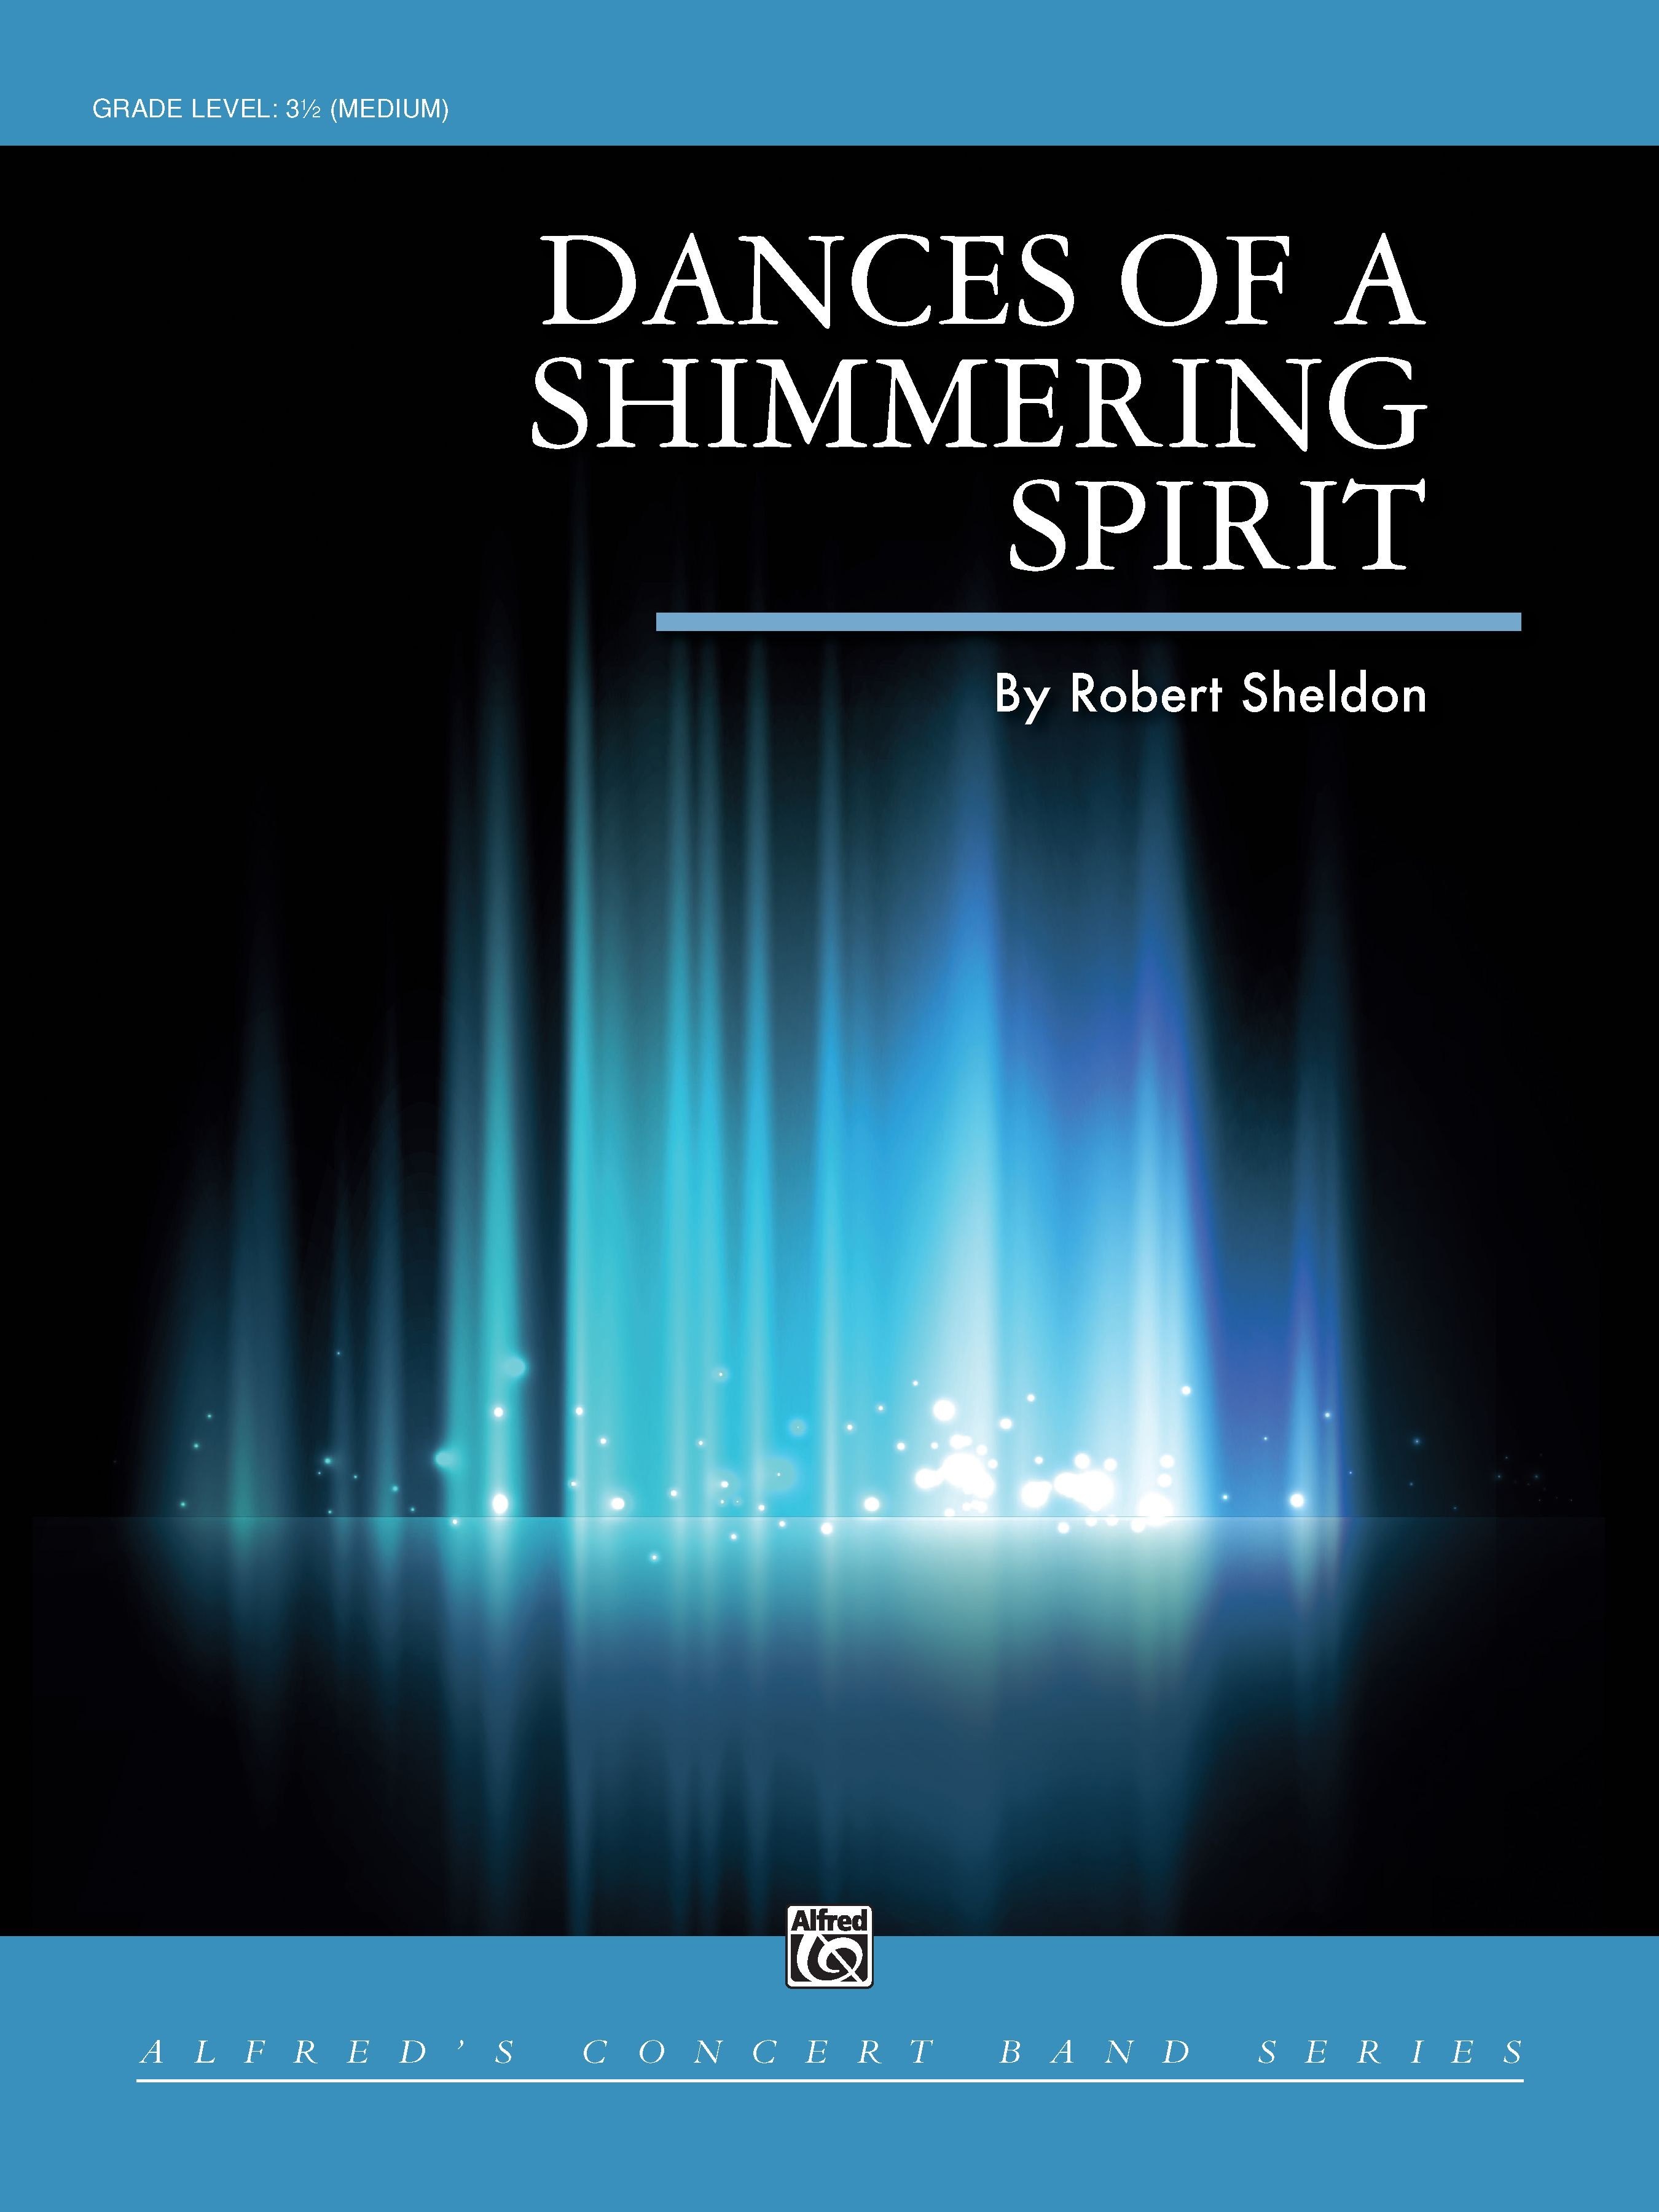 Dances of a Shimmering Spirit band sheet music cover